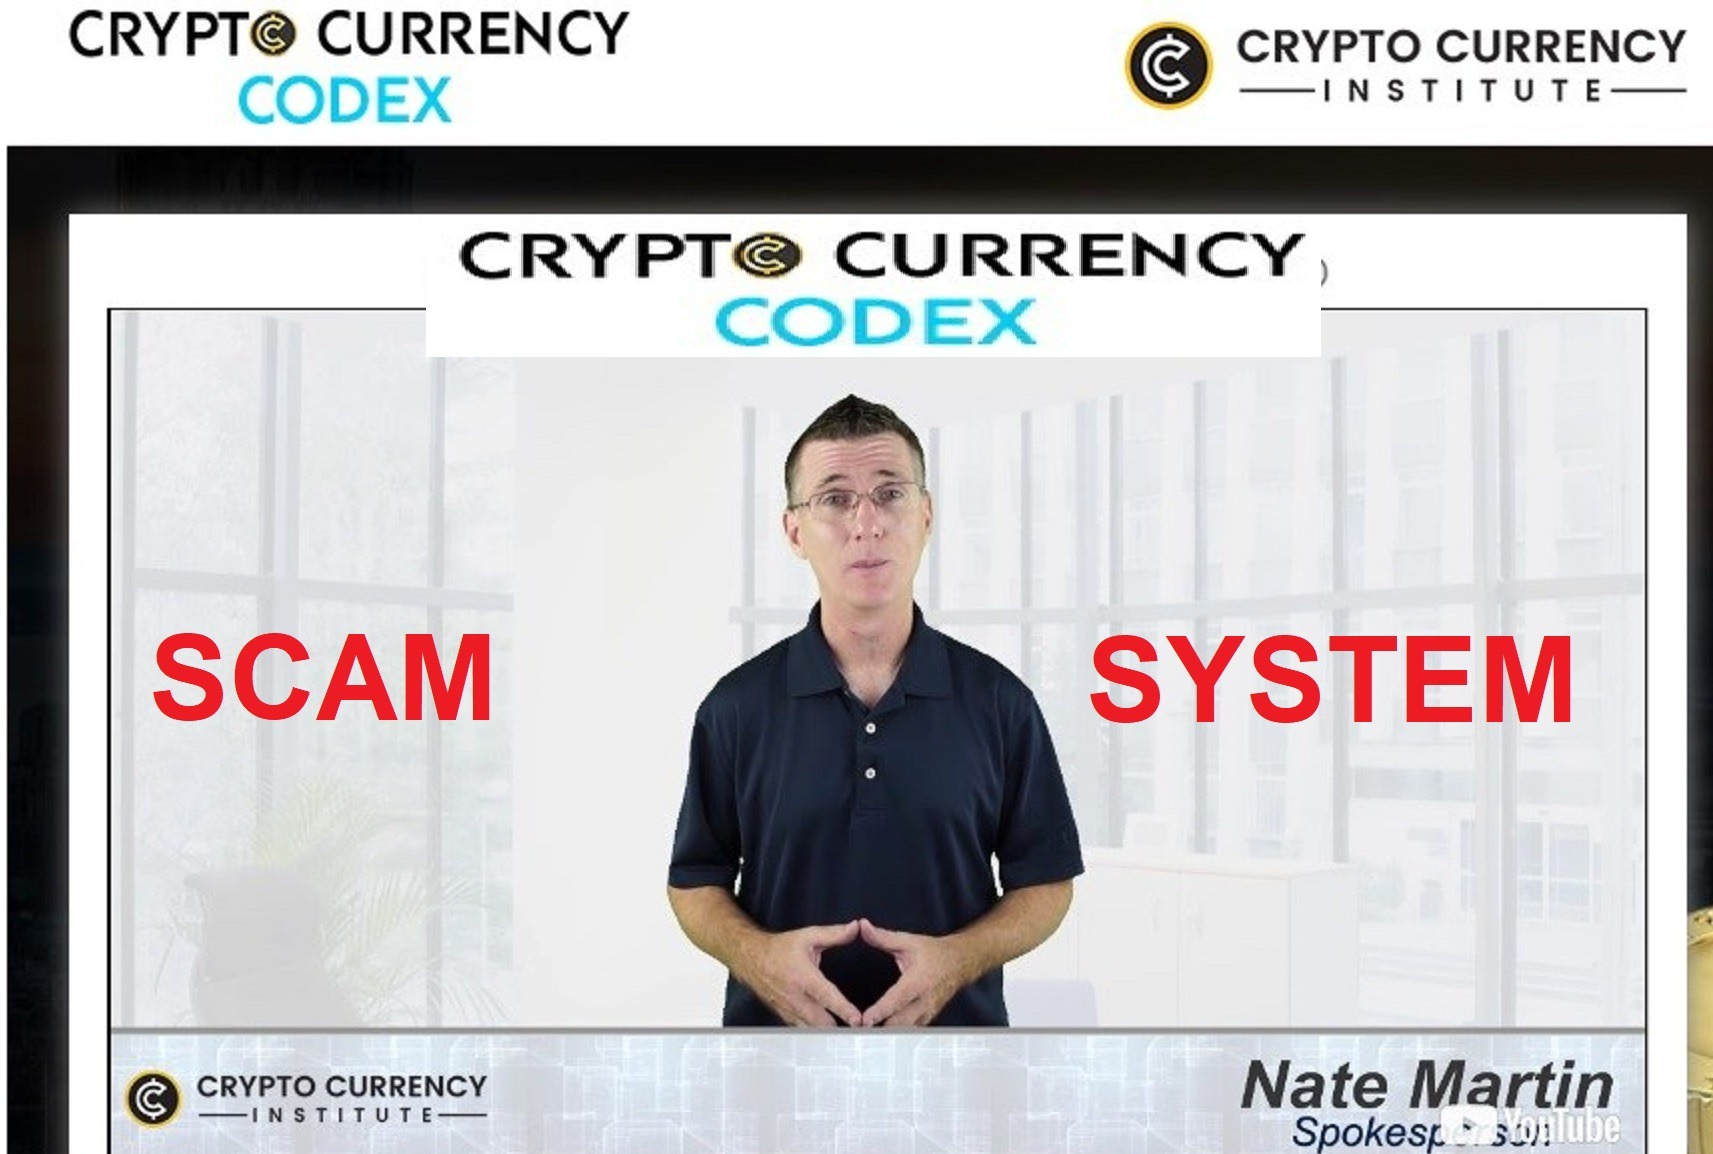 Crypto Currency Codex